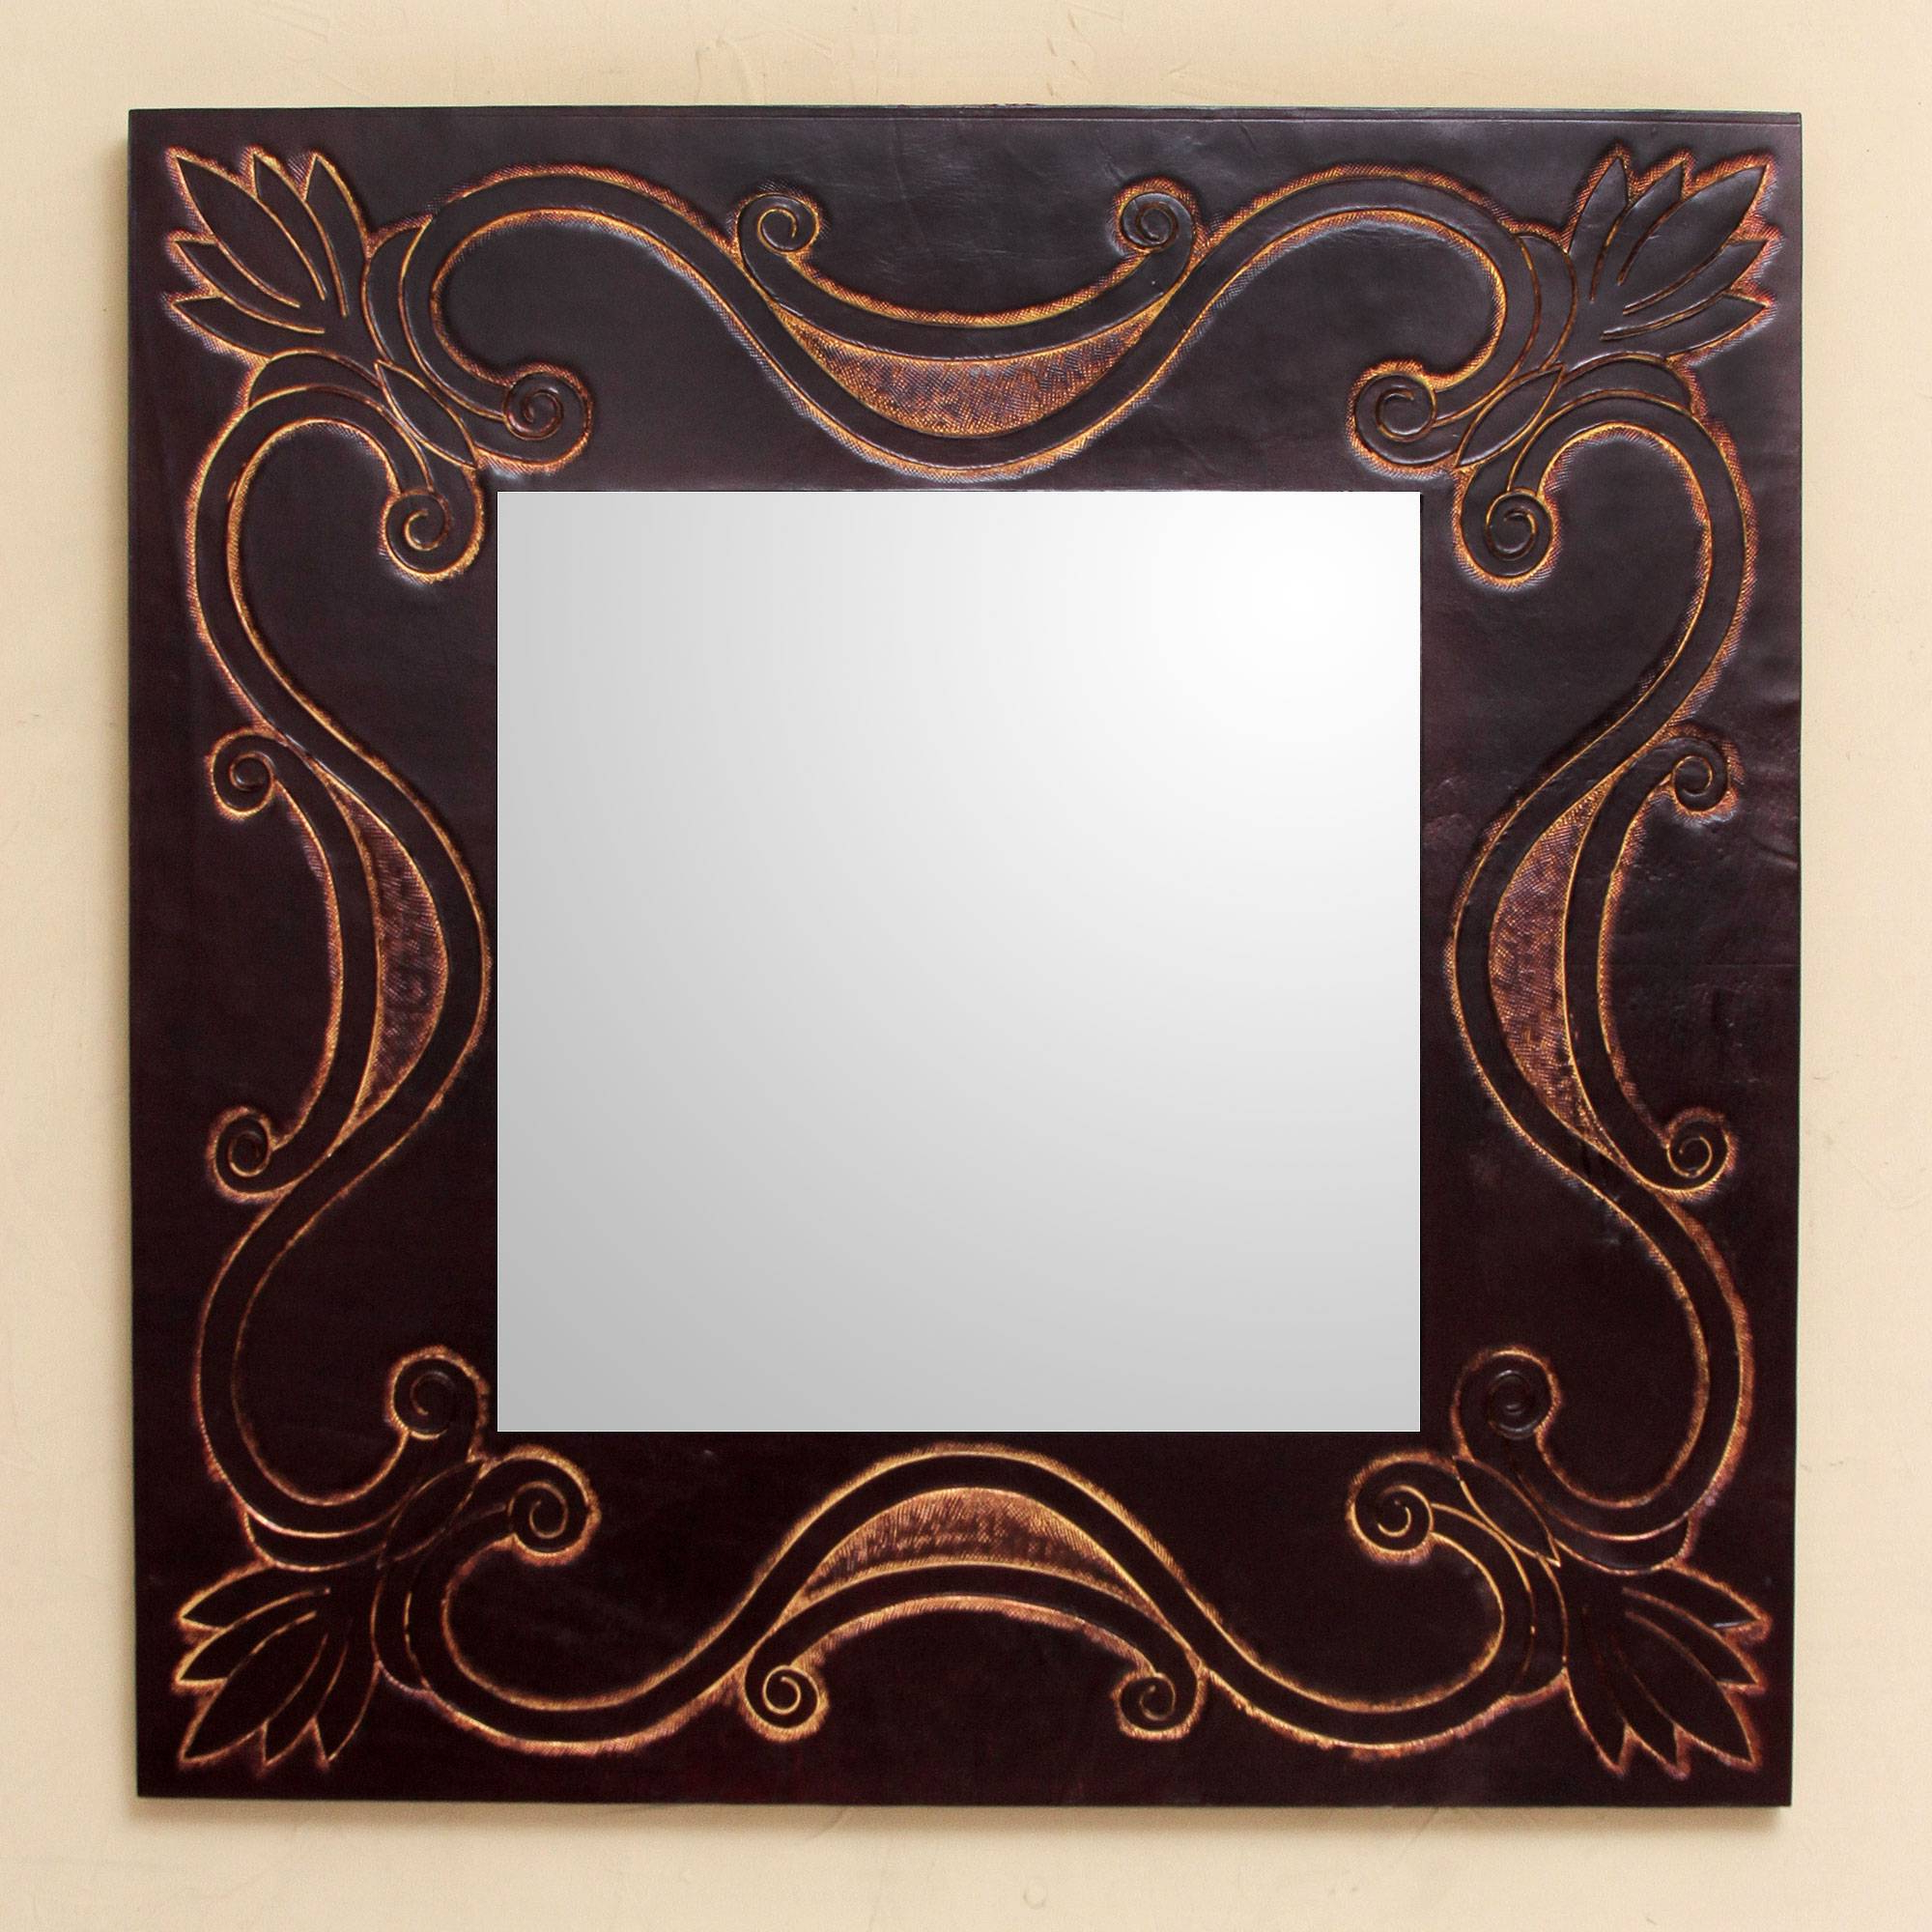 2019 Handcrafted Contemporary Wall Mirror With Tooled Leather, 'lotus Tendrils' Regarding Leather Wall Mirrors (View 6 of 20)